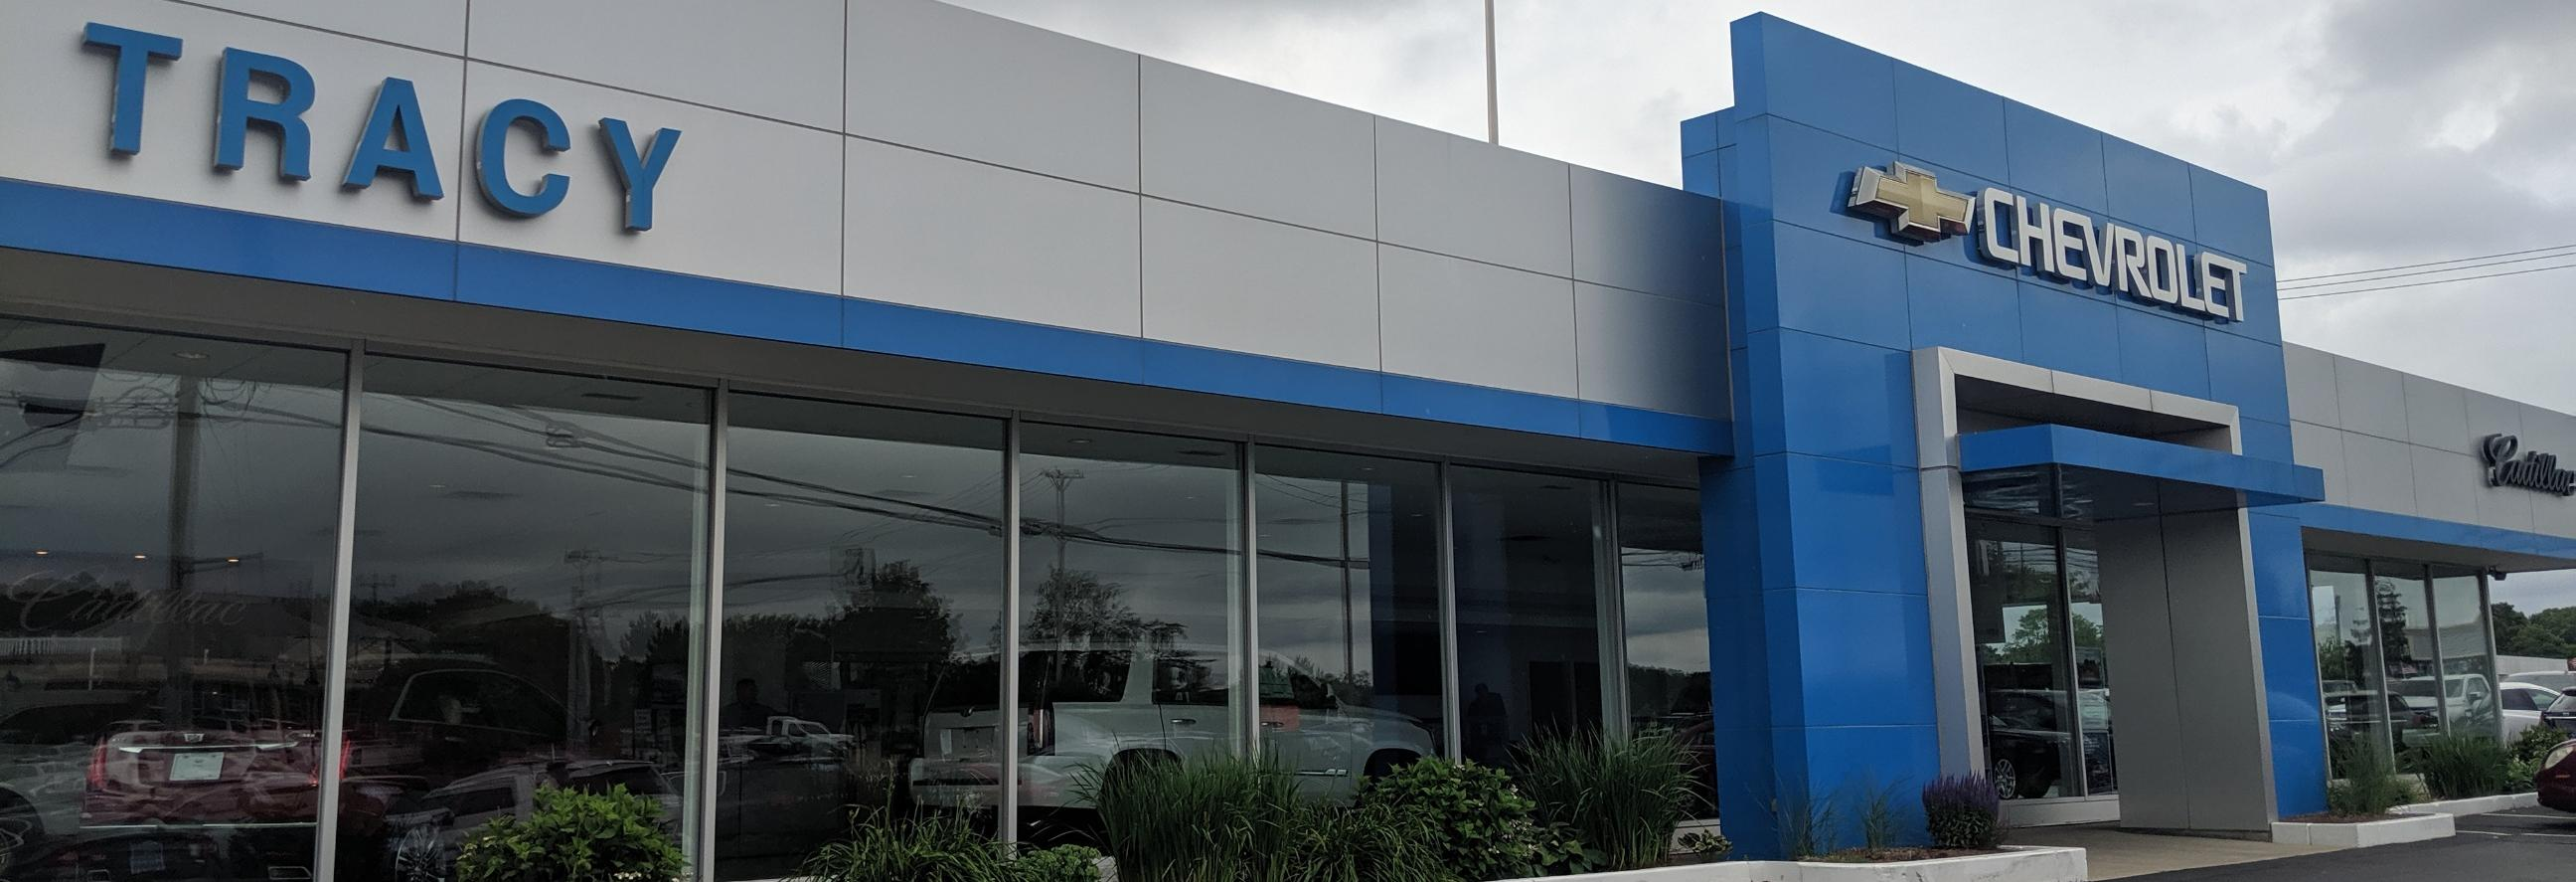 Since our beginning in 1992, Tracy Chevrolet has emphasized first-rate customer service!